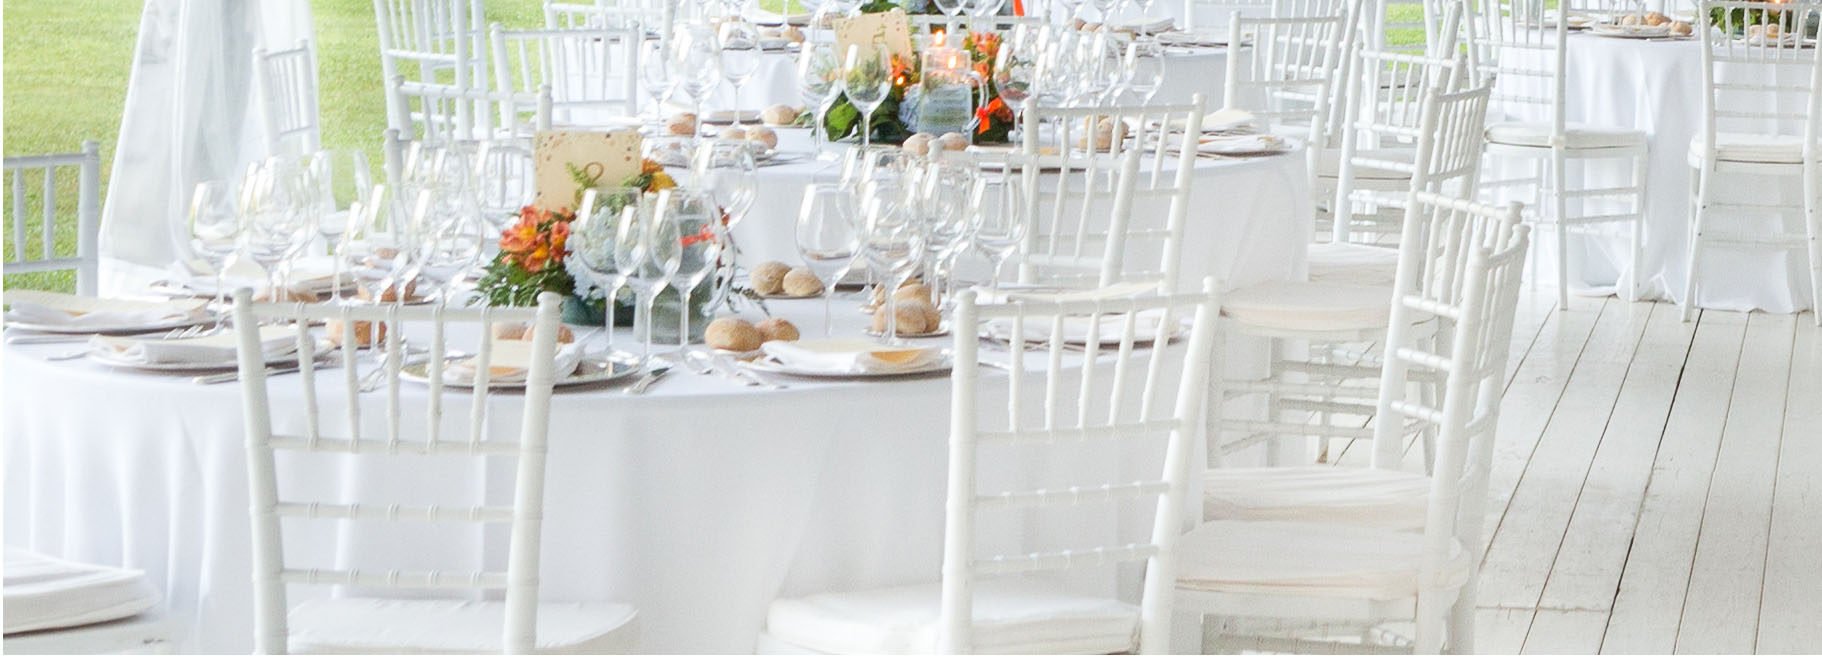 Fancy chair rentals - Home Chairs